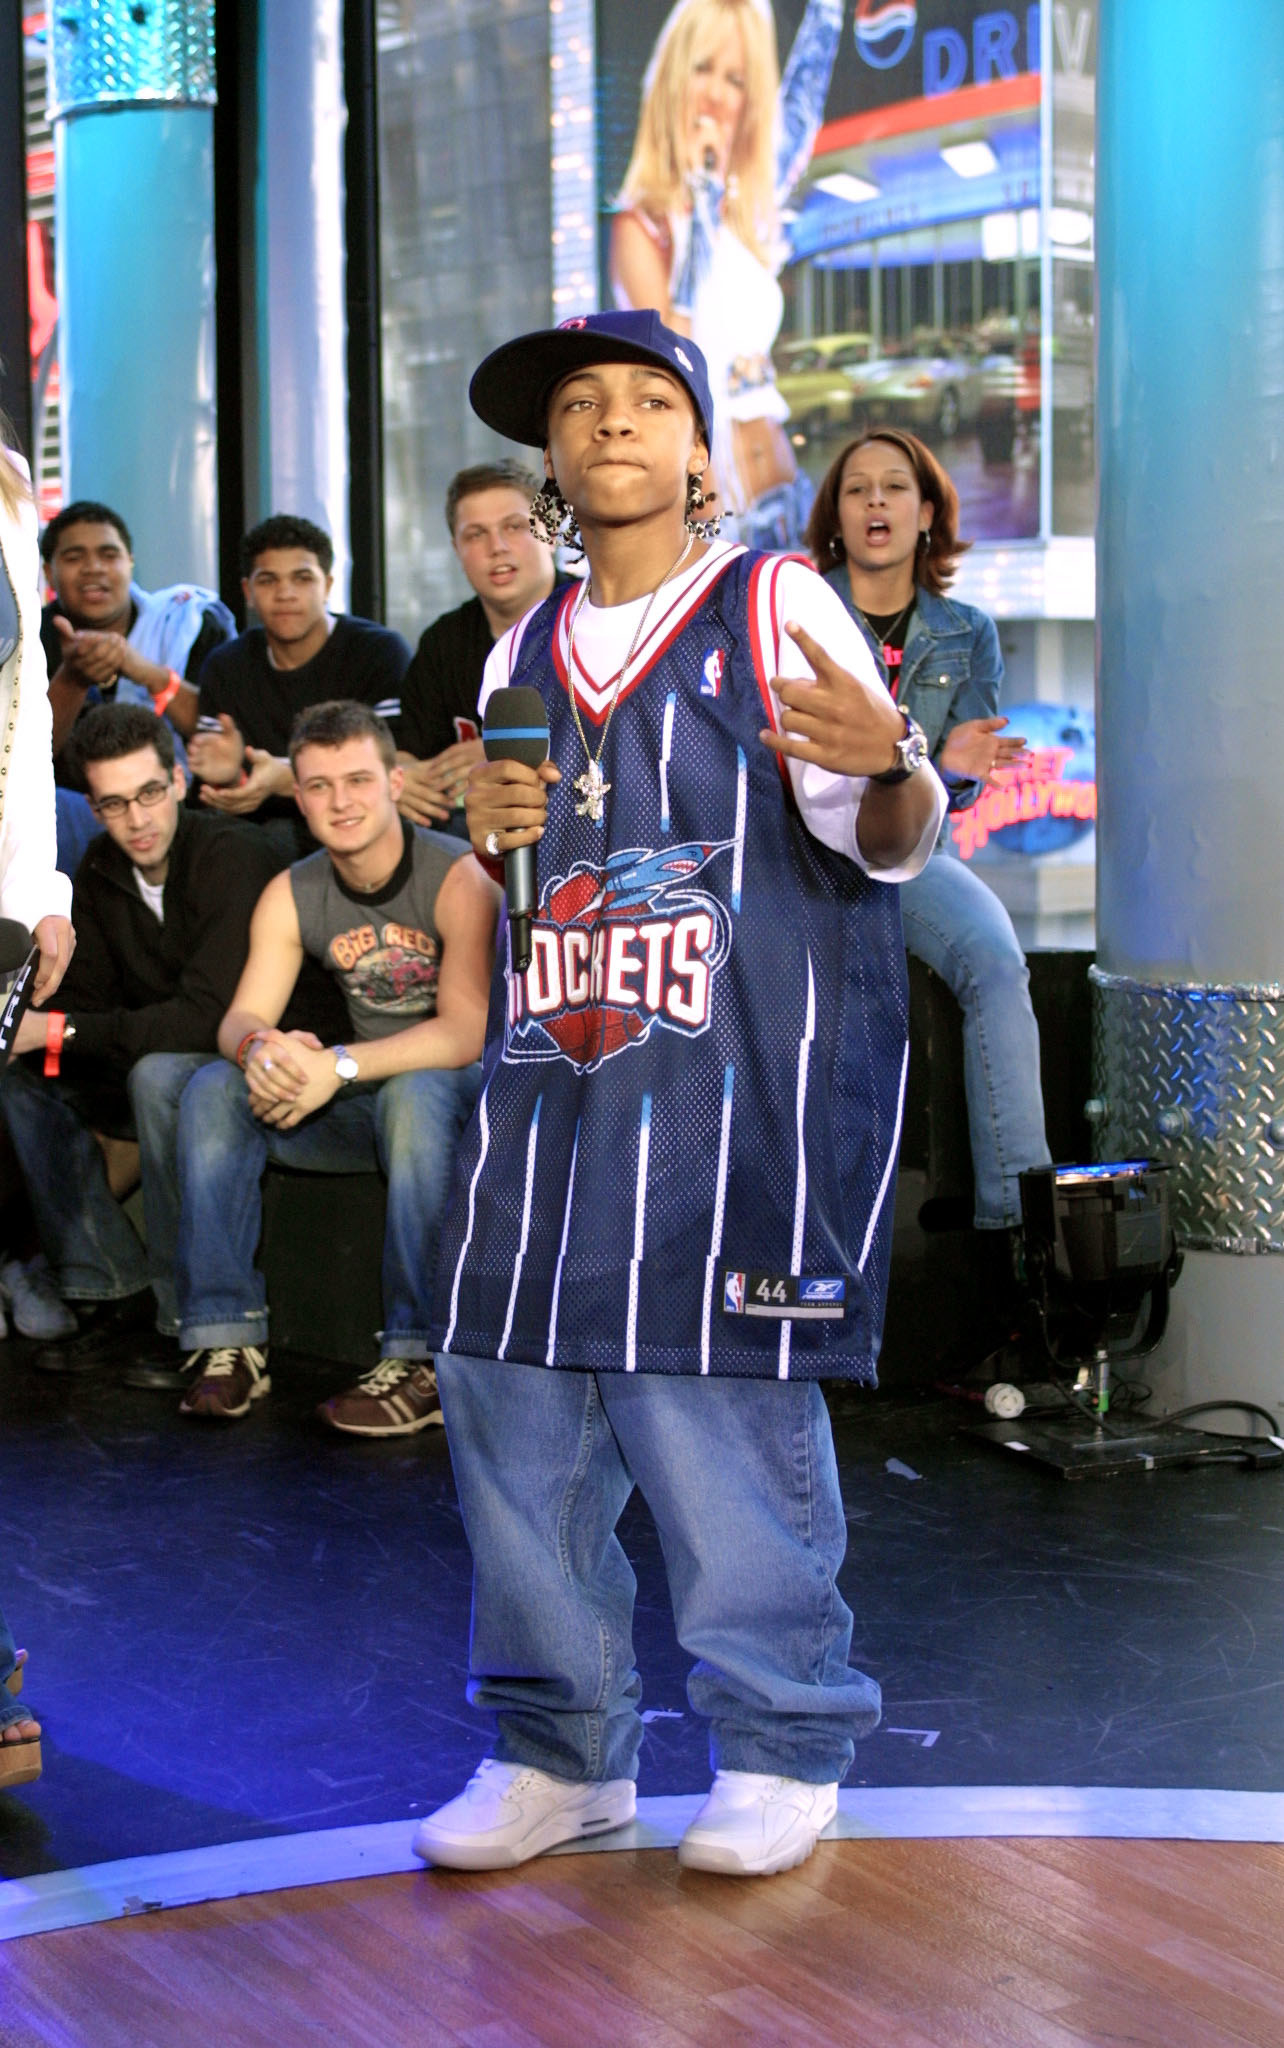 Lil Bow Wow being actually lil'.